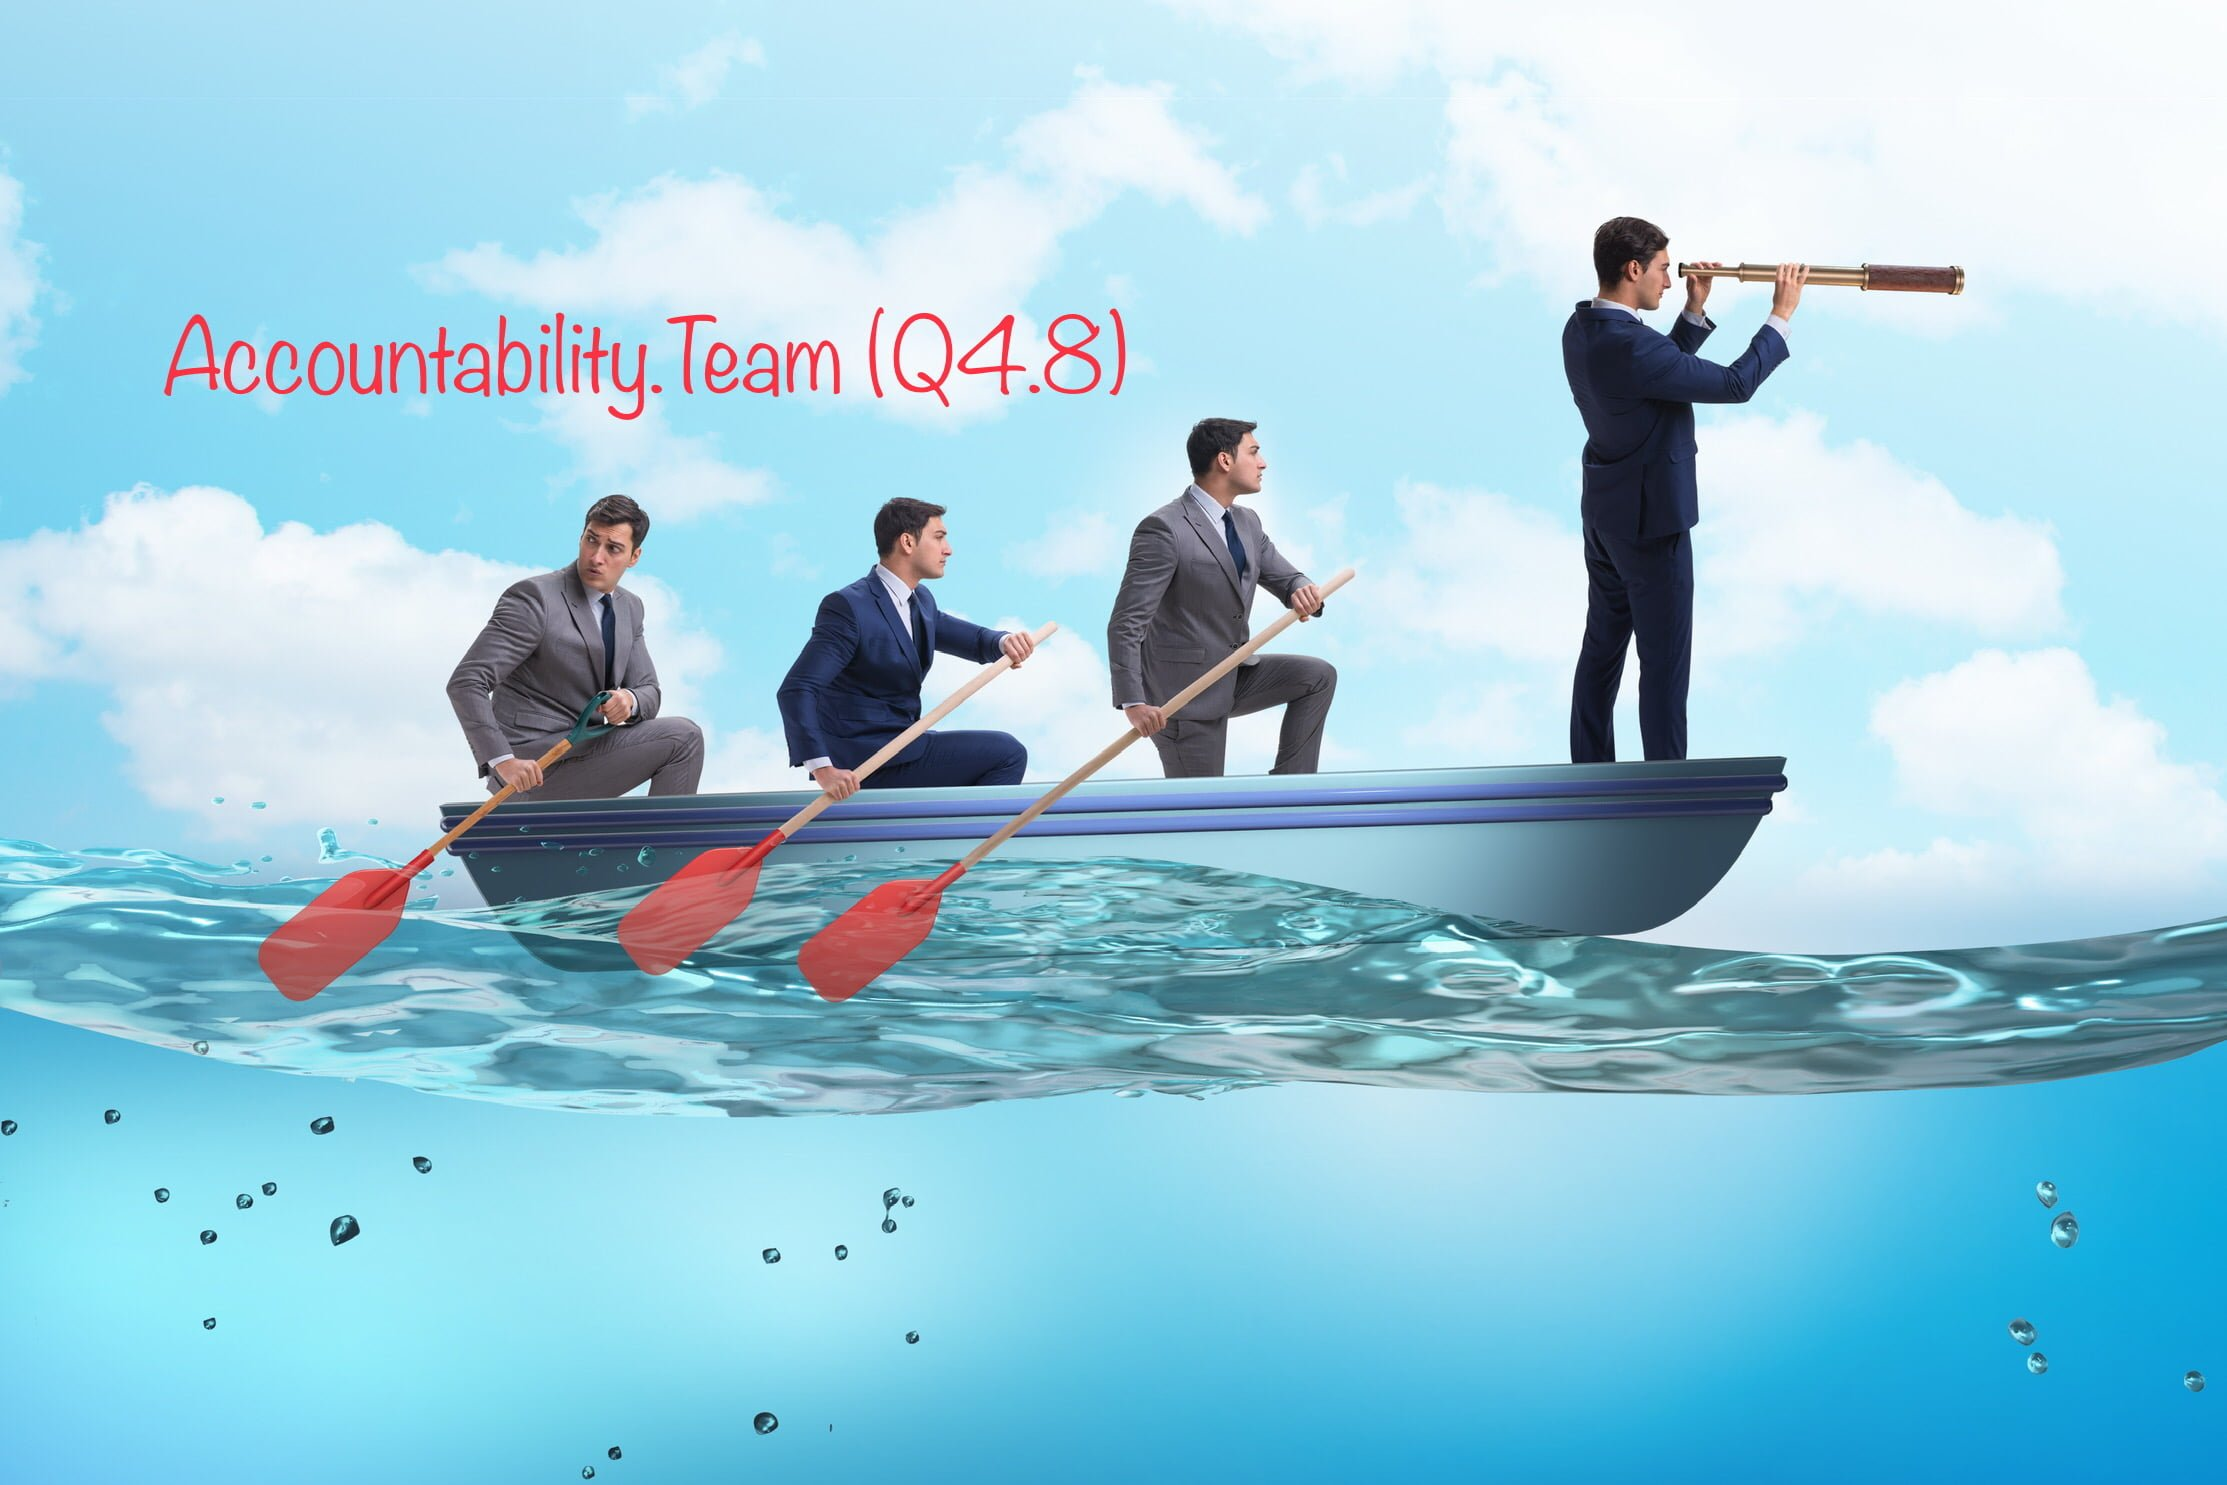 ACCOUNTABILITY.TEAM (Q4.8)